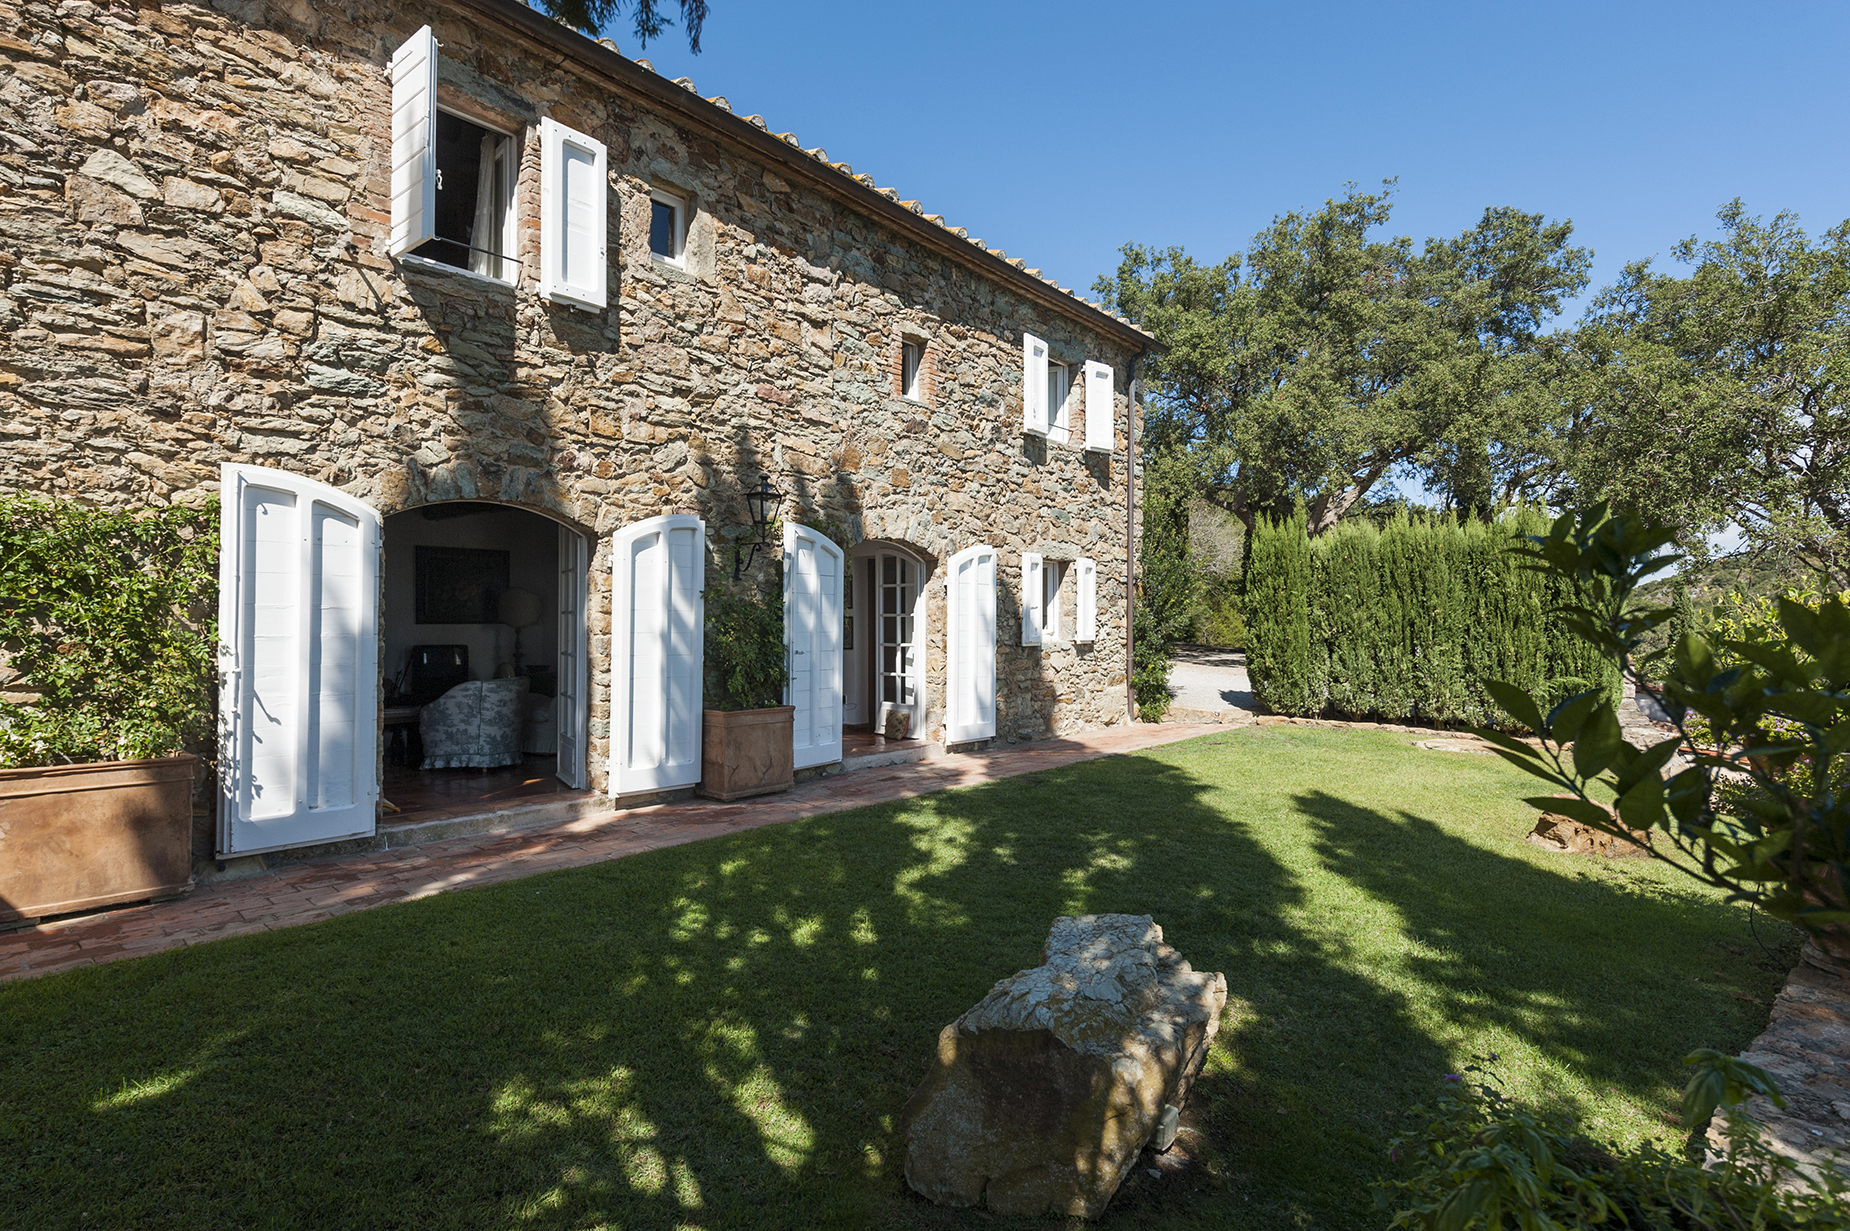 Wonderful stone villa in Monte Argentario